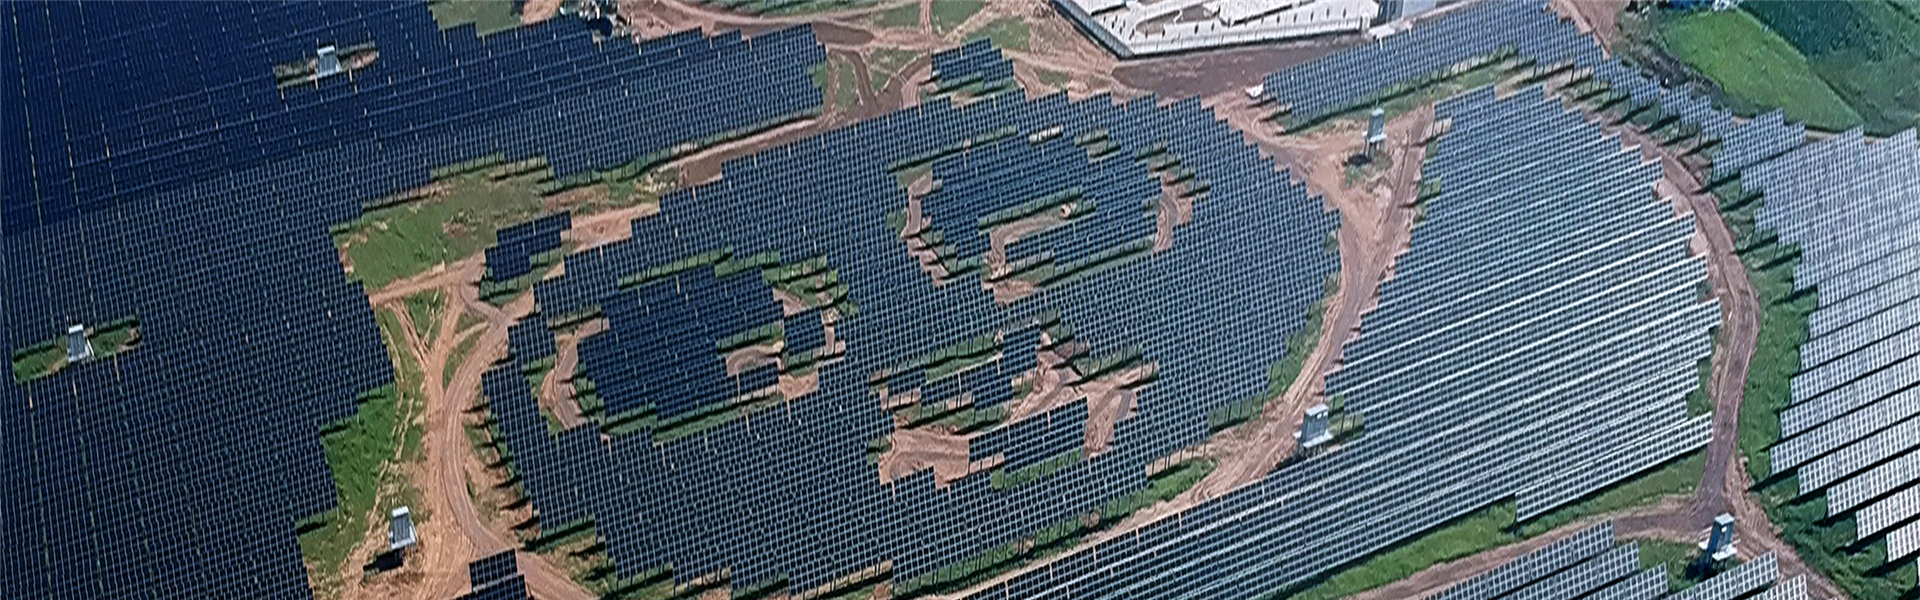 Panda-shaped photovoltaic power station in Datong